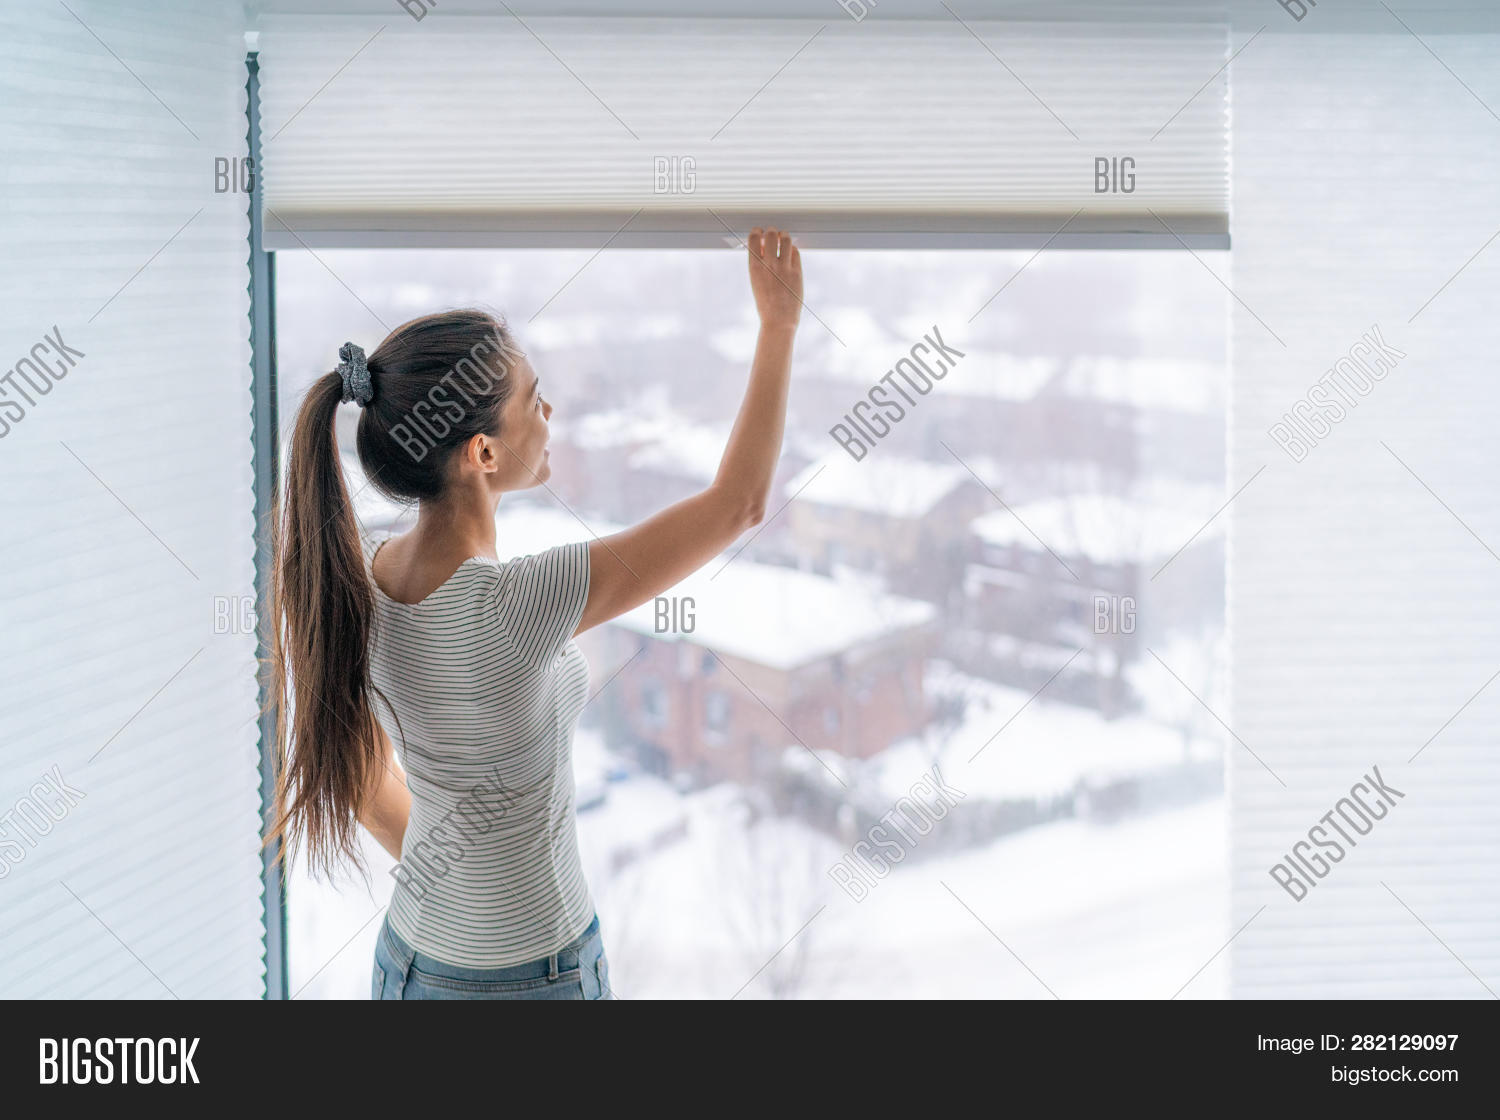 Home blinds window shades woman opening shade blind during winter morning. Asian girl holding modern cordless top down luxury curtains indoors.